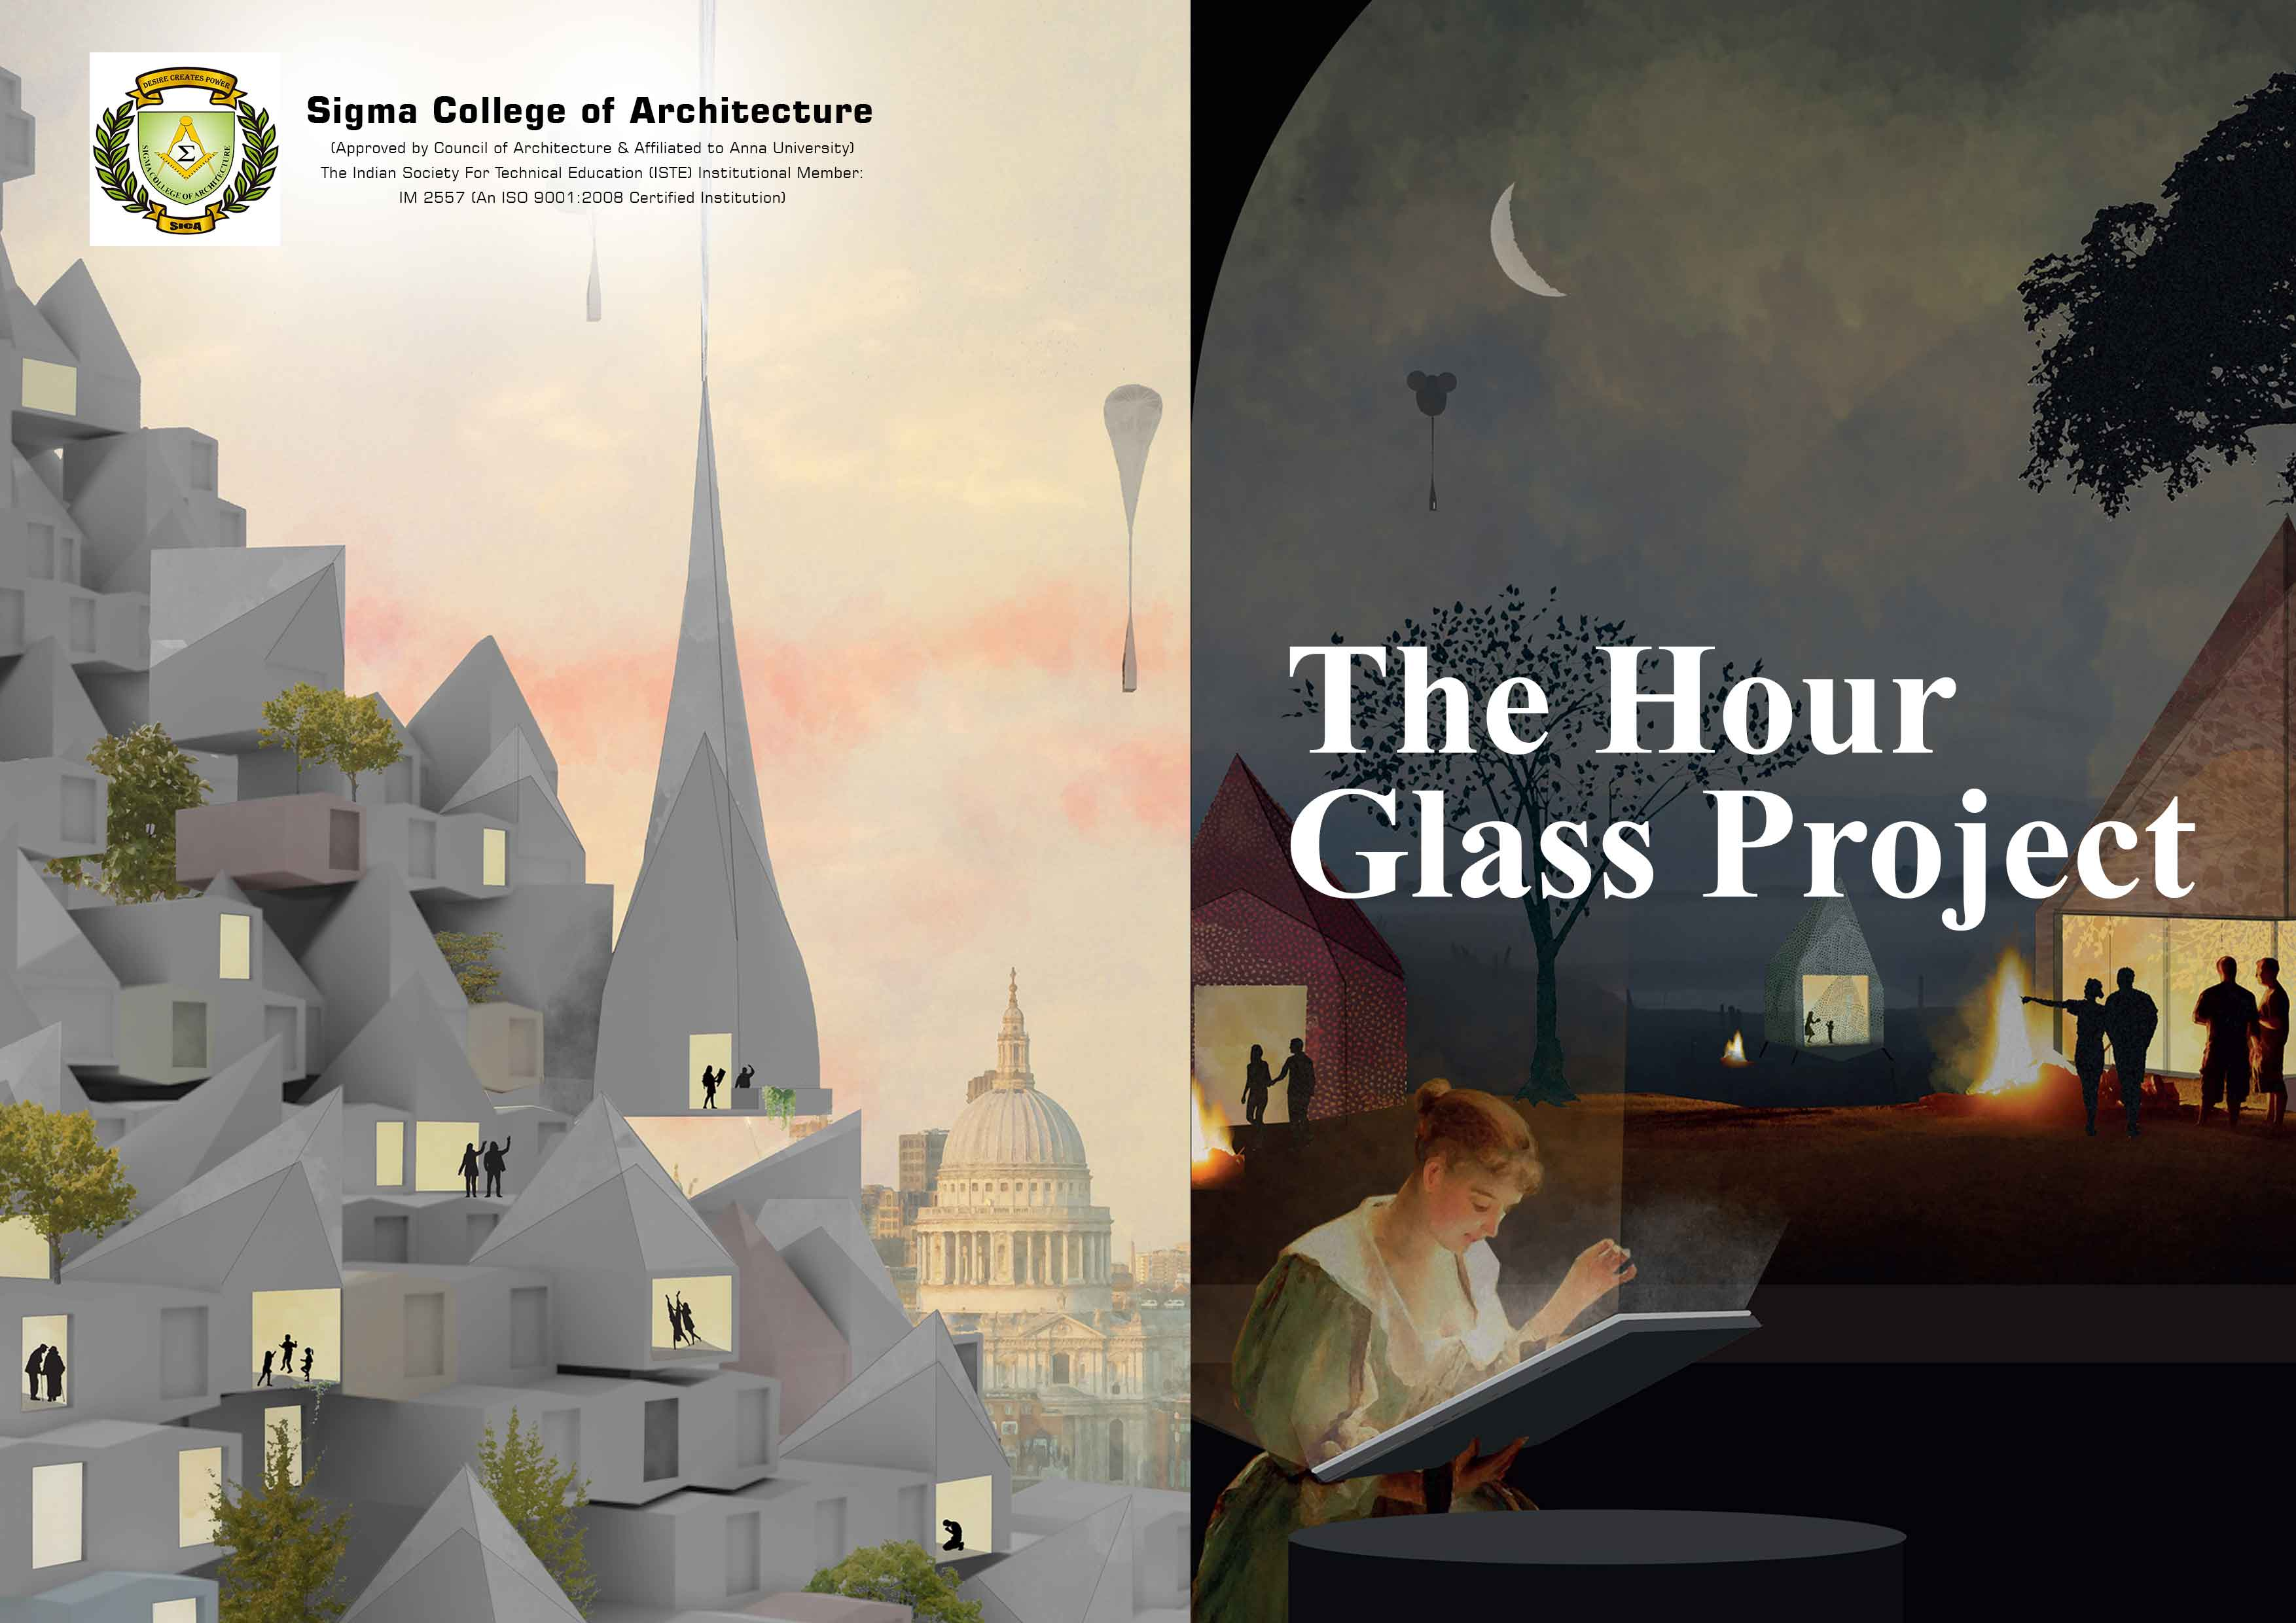 The Hour Glass Project